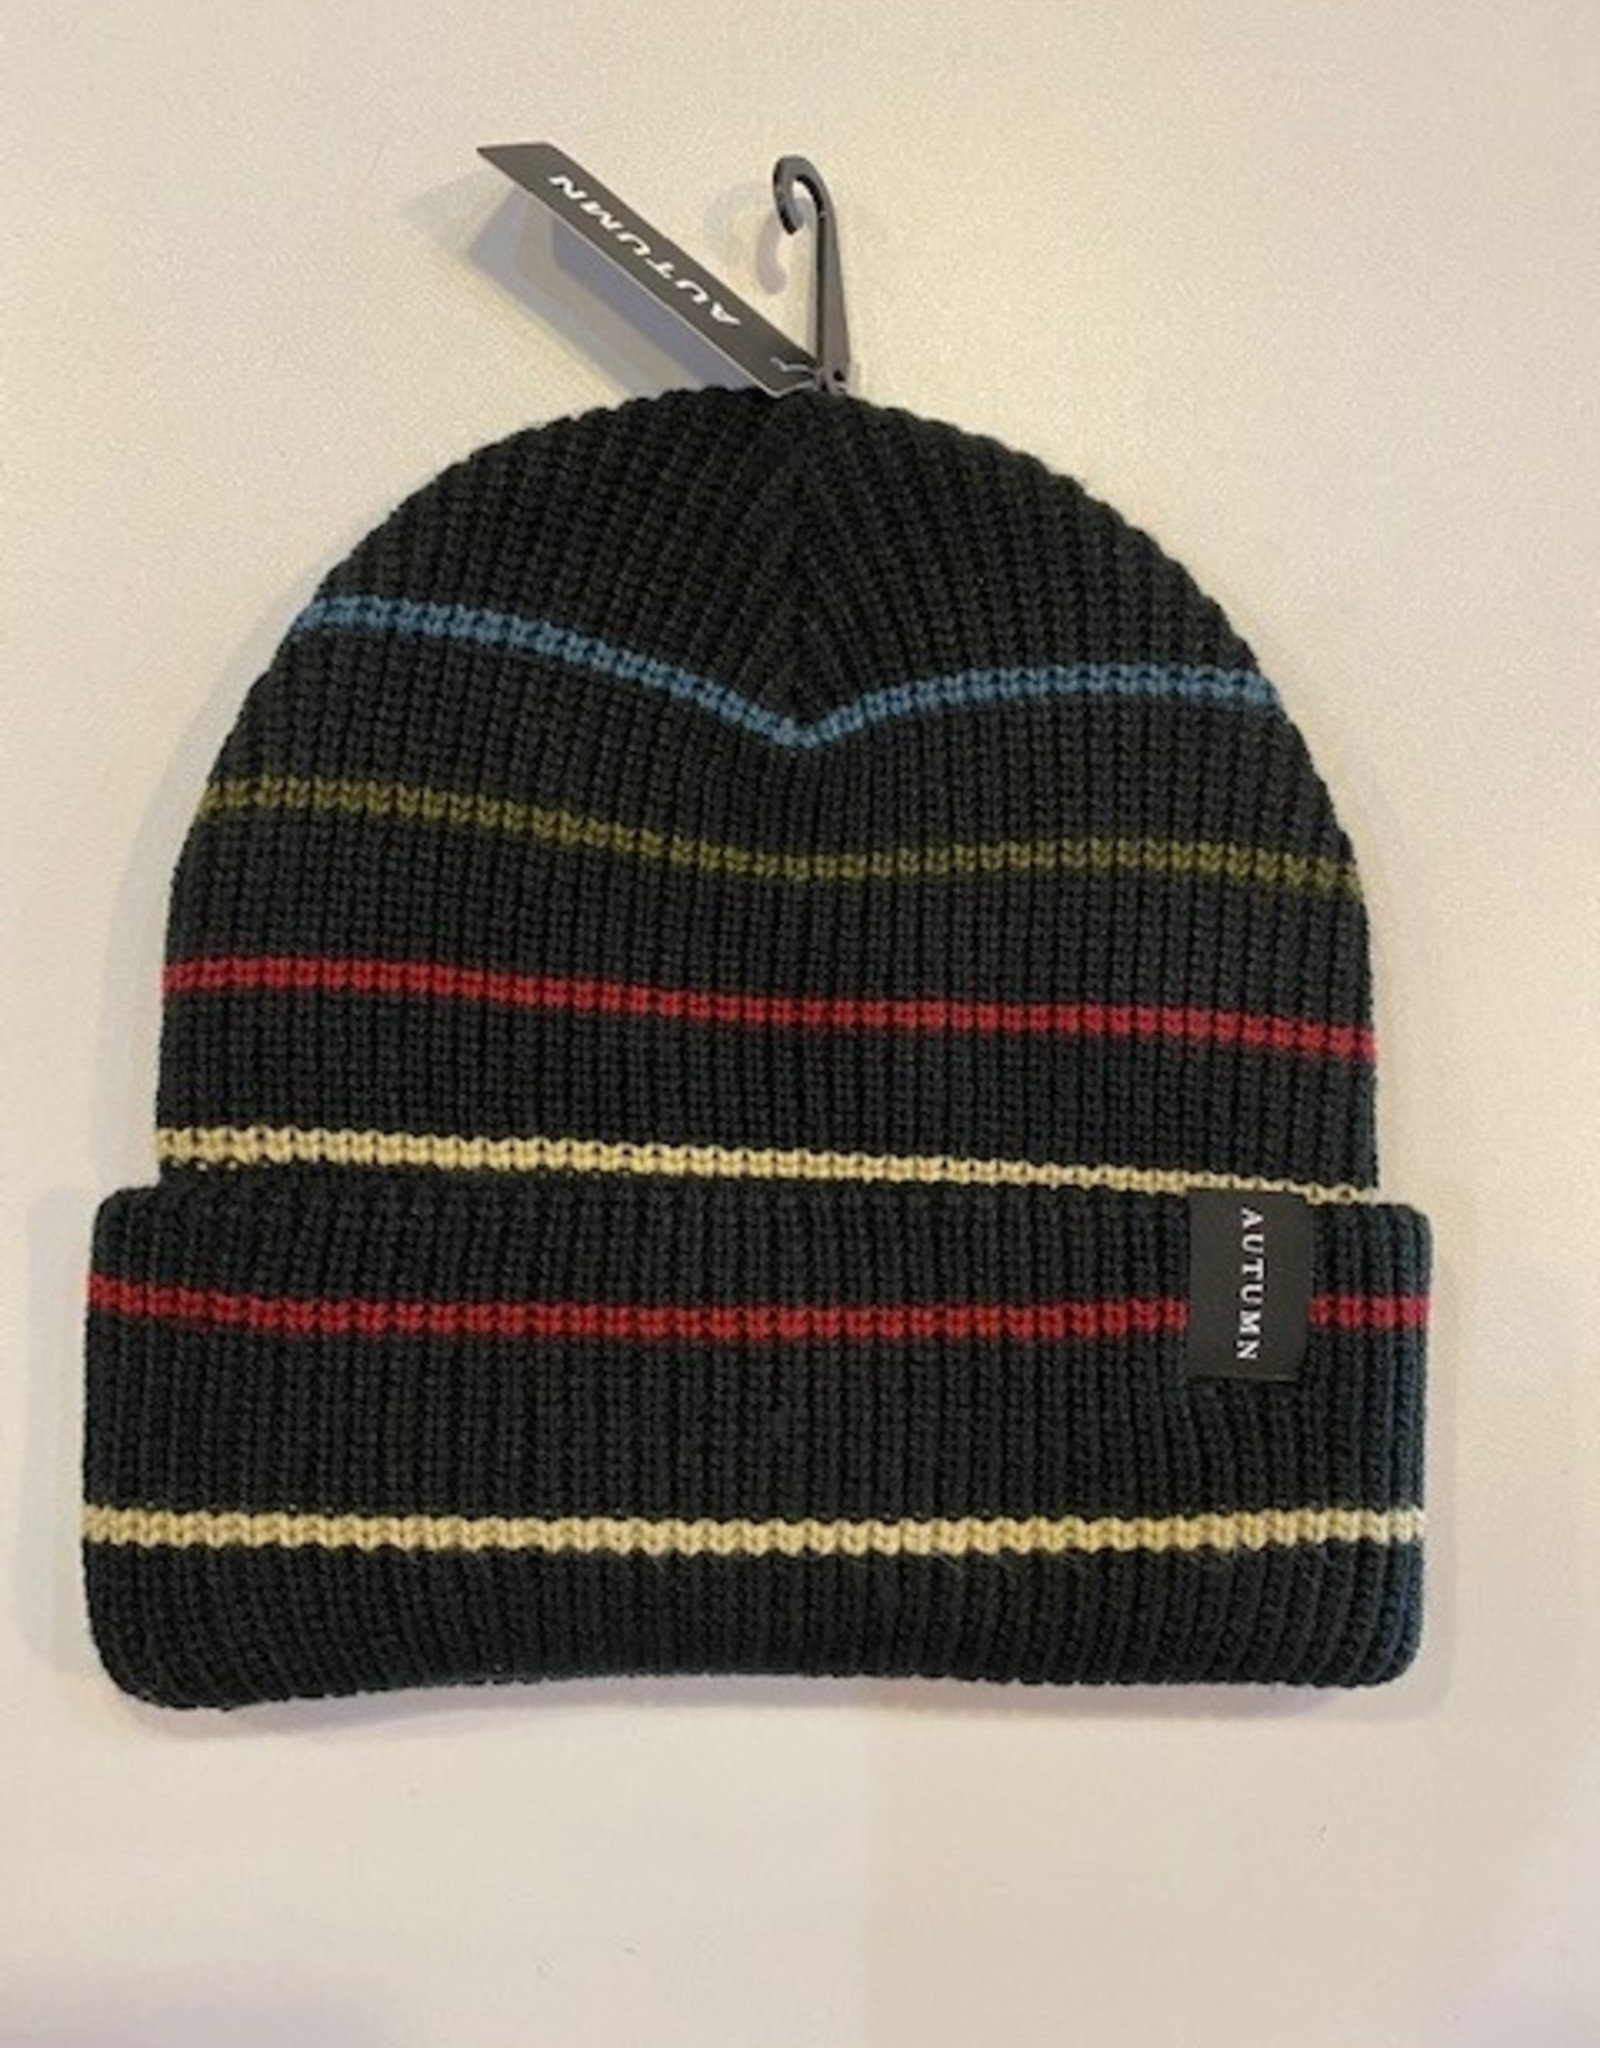 AUTUMN AUTUMN 2021 STRIPED BEANIE